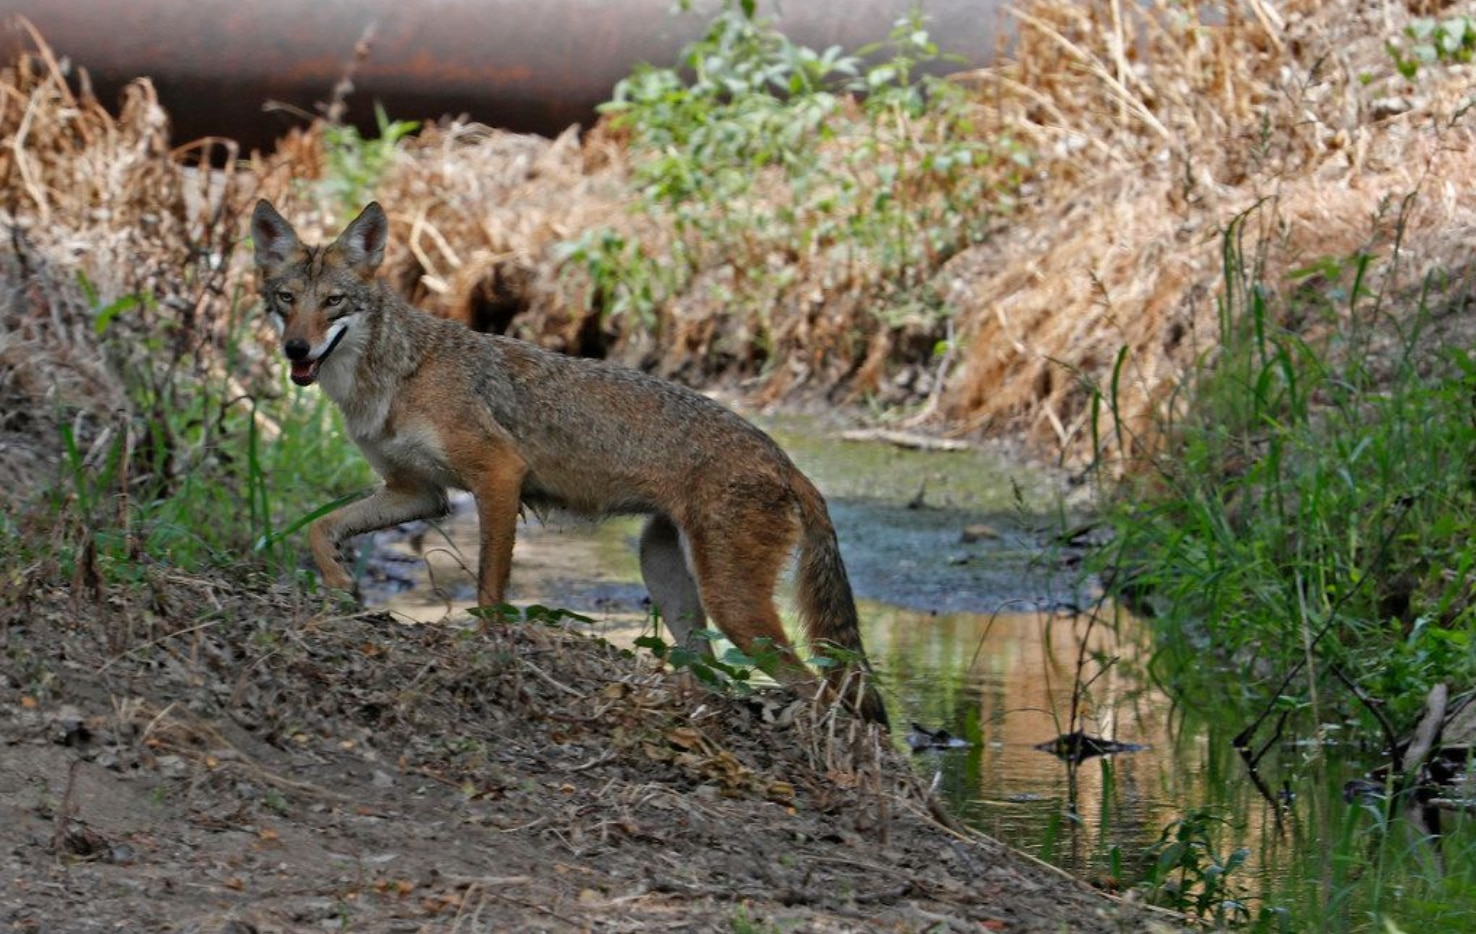 The Frisco Police Department emphasizes safe coexistence with the animals and promotes education as the best safety measure for potential interactions with coyotes.